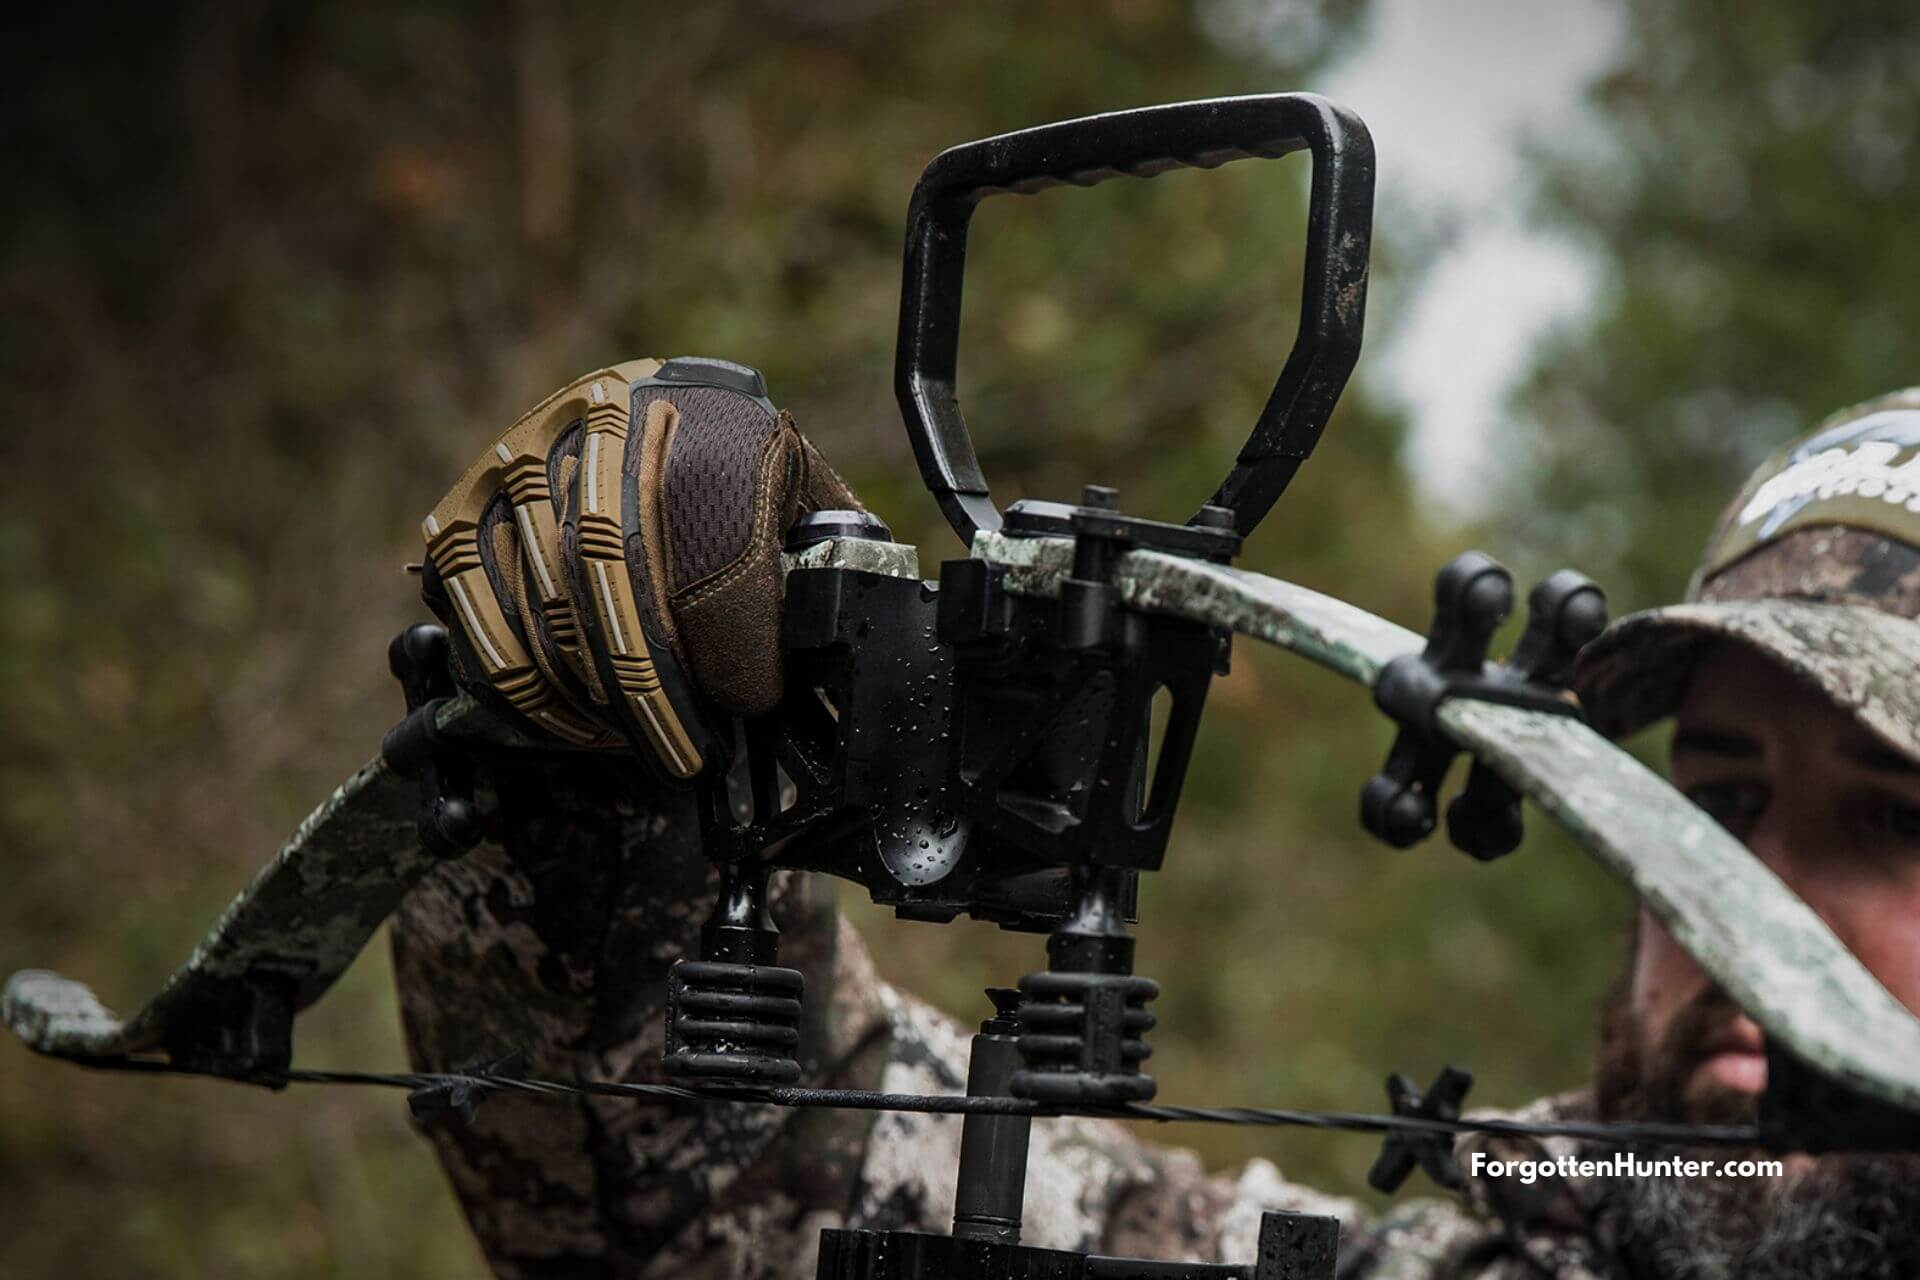 Excalibur Assassin 420 TD Crossbow Review